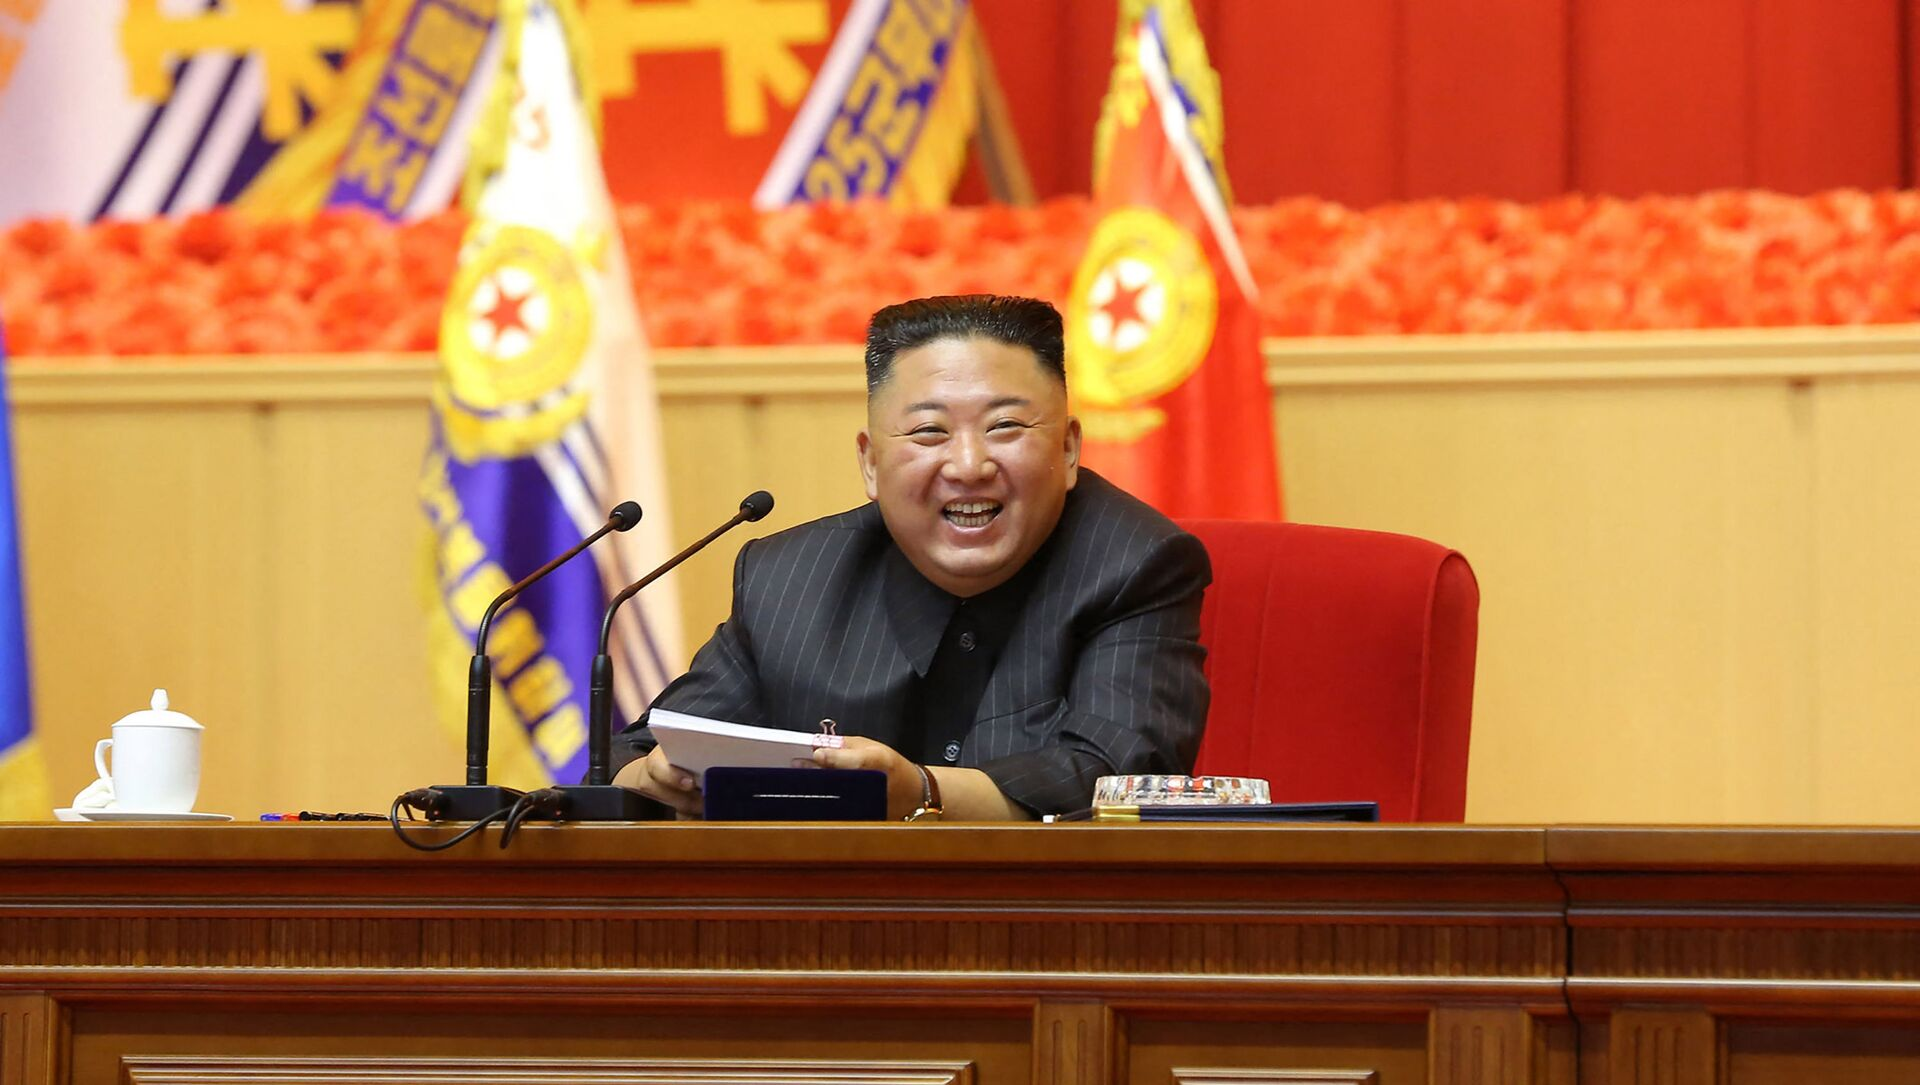 This undated picture released from North Korea's official Korean Central News Agency (KCNA) on July 30, 2021 shows North Korean leader Kim Jong Un taking part in the First Workshop of KPA Commanders and Political Officers, at April 25 House of Culture in Pyongyang. - Sputnik International, 1920, 03.08.2021